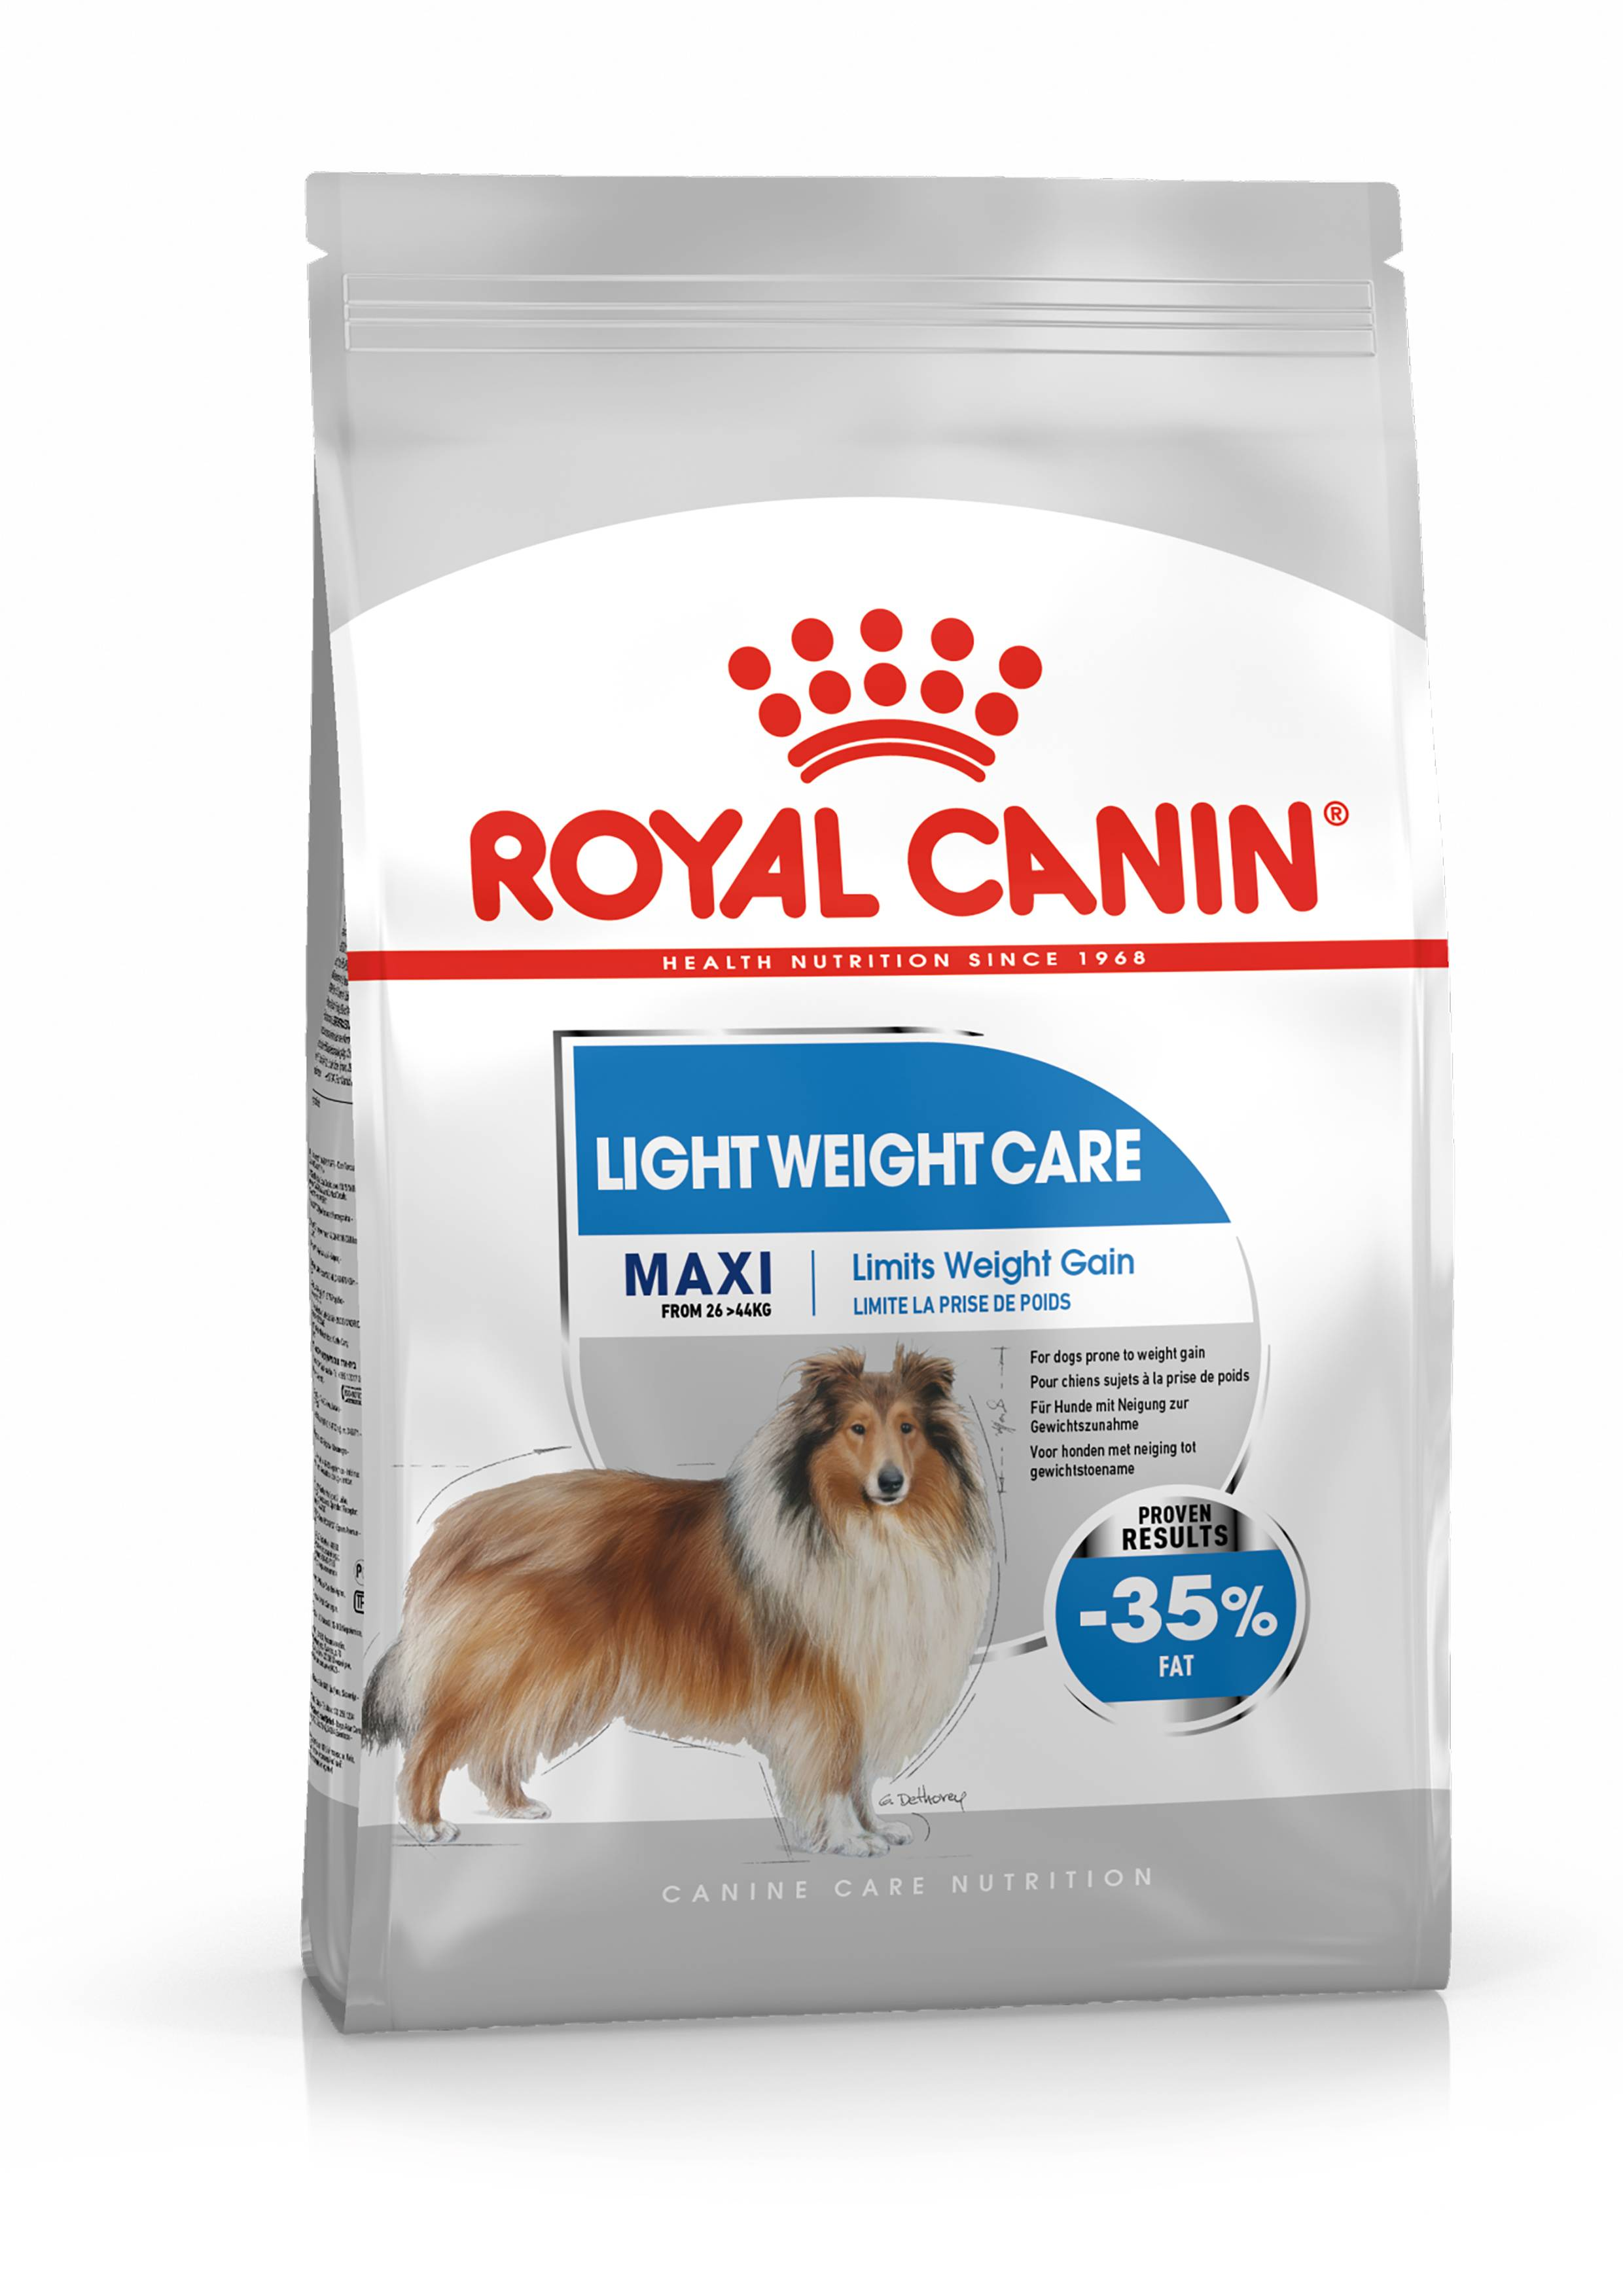 Royal Canin Maxi Light Weight Care pour chien 10 kg